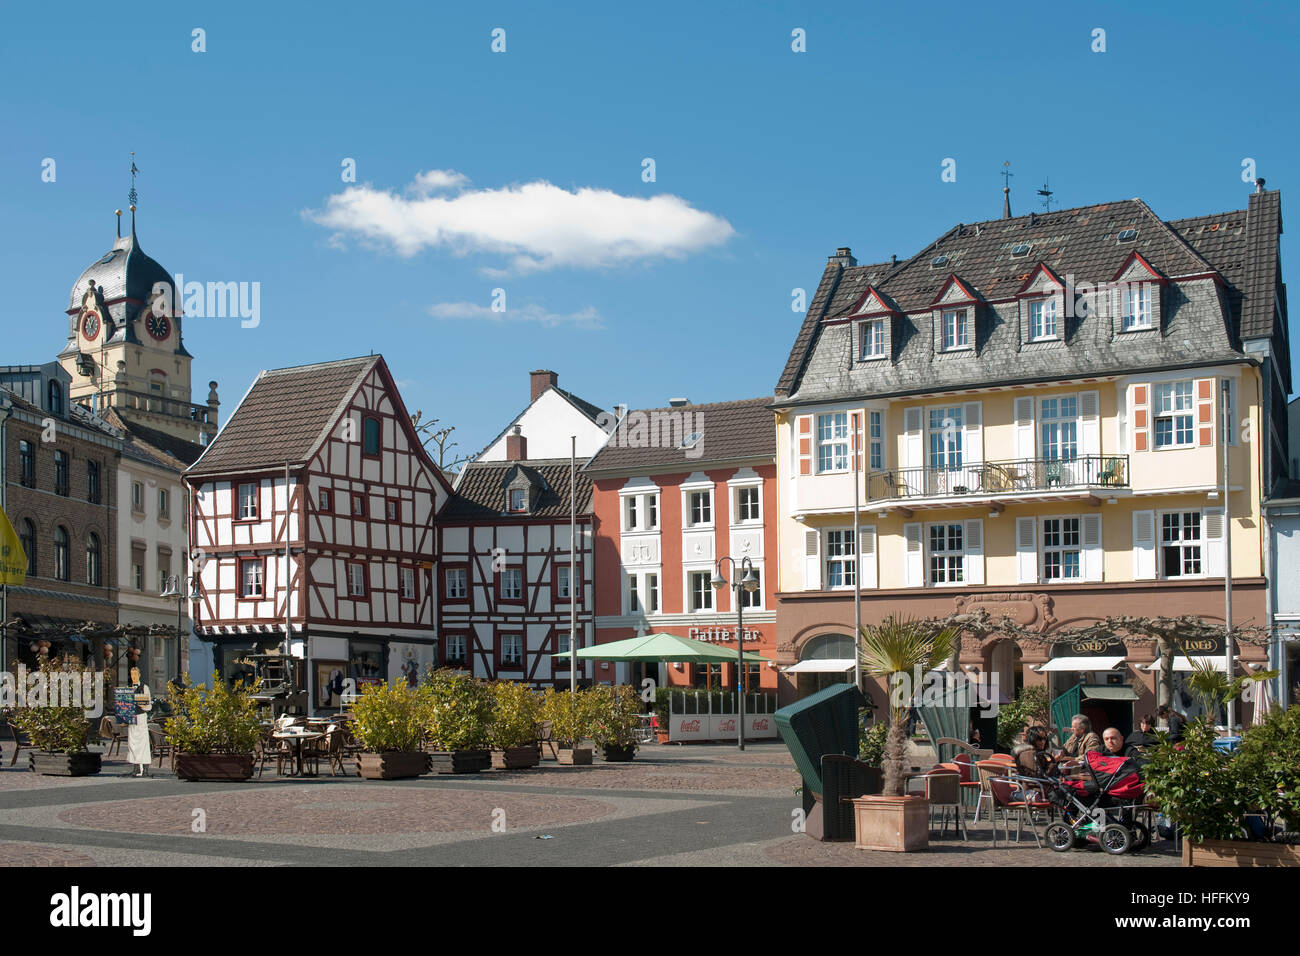 Deutschland nordrhein westfalen euskirchen alter markt stock photo 130037357 alamy - Euskirchen mobel ...